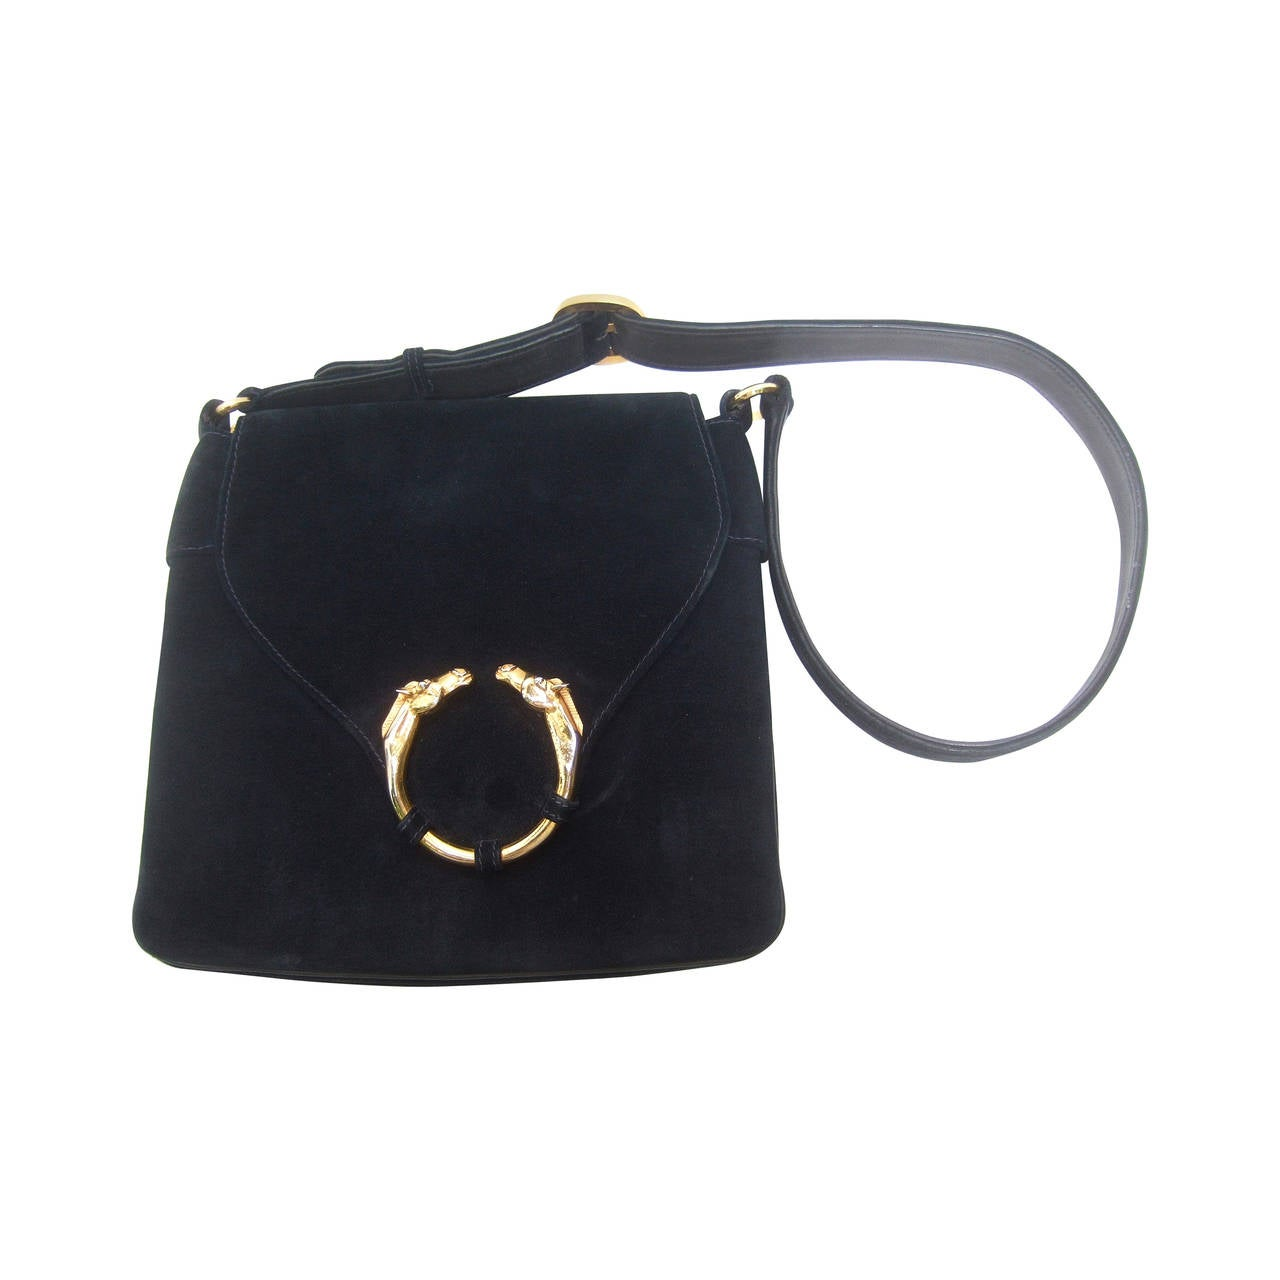 Gucci Equine Emblem Midnight Blue Suede Shoulder Bag c 1970 For Sale